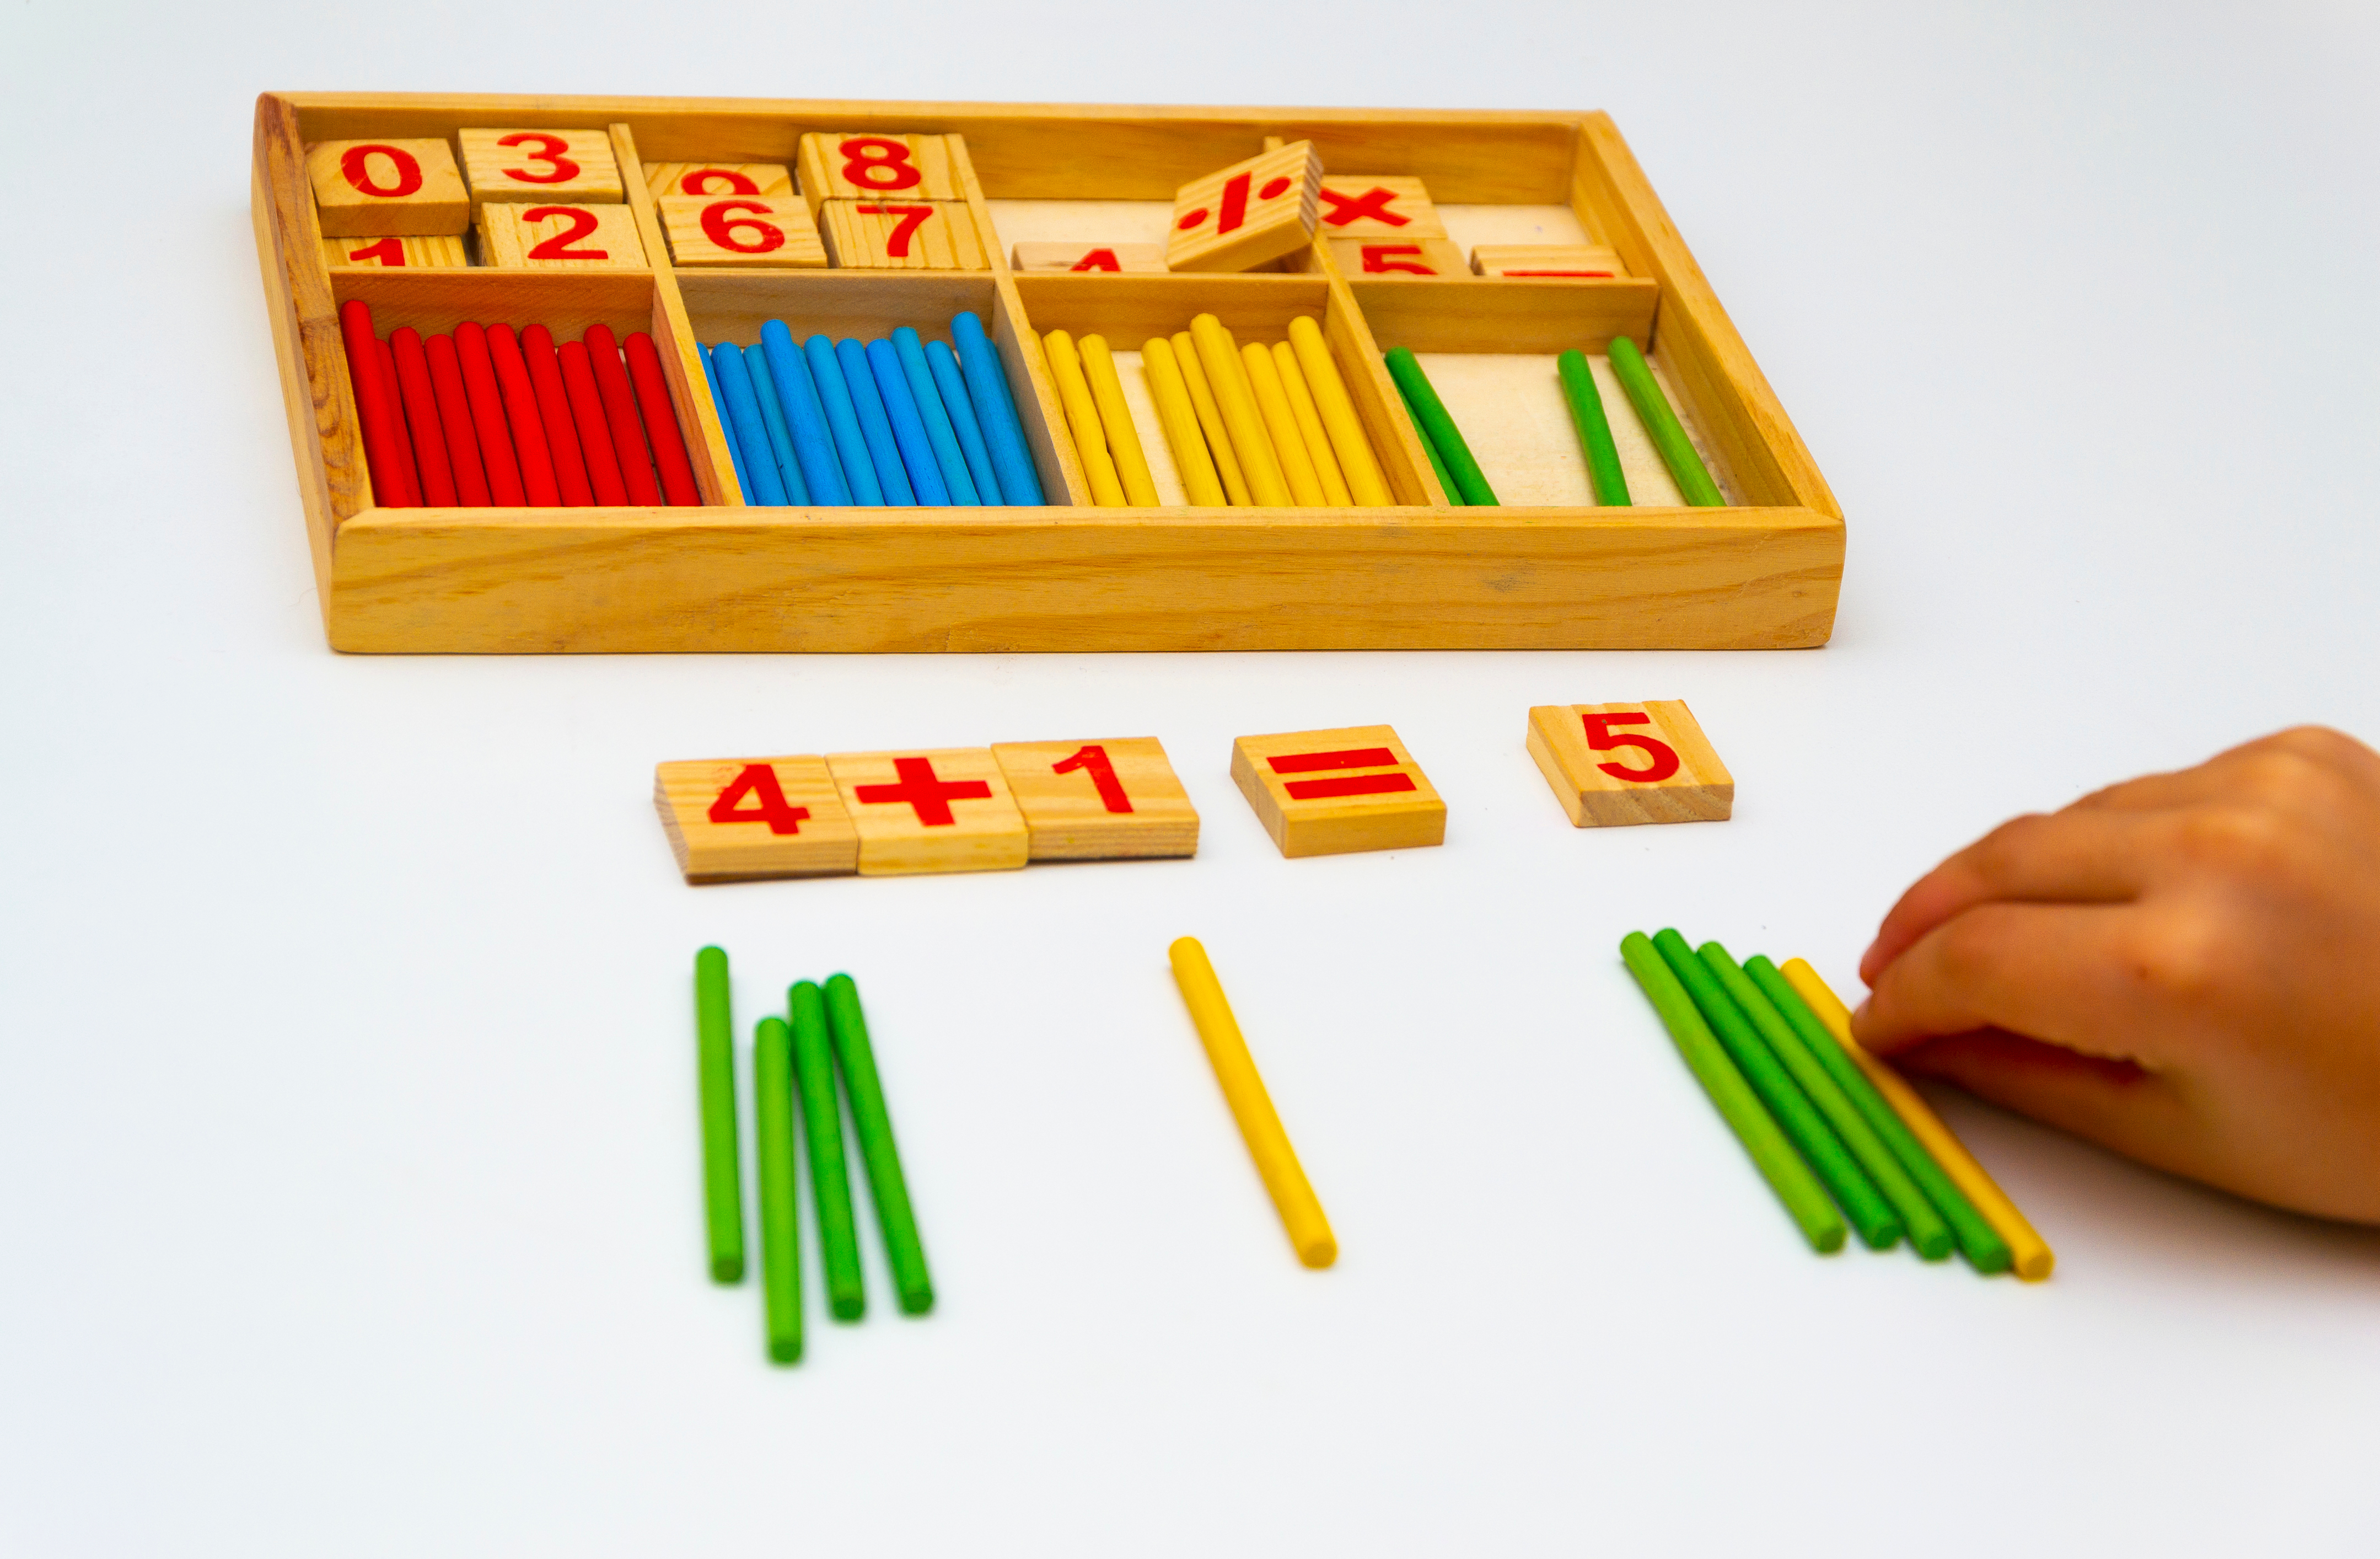 Using Manipulatives to Support Math Learning at Home